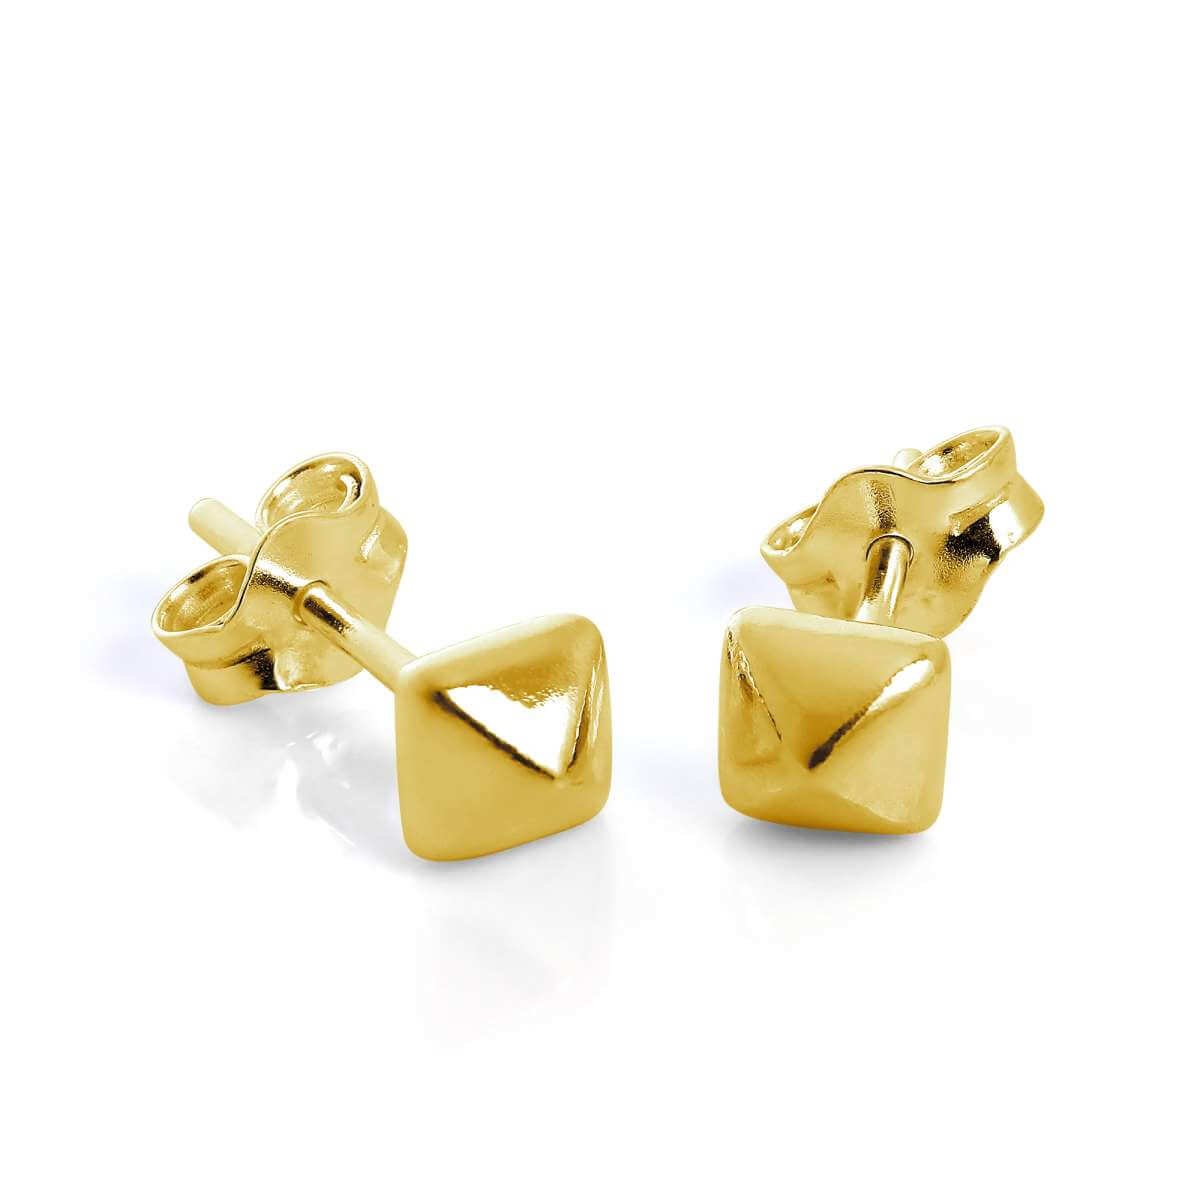 Gold Plated Sterling Silver Square Pyramid Stud Earrings